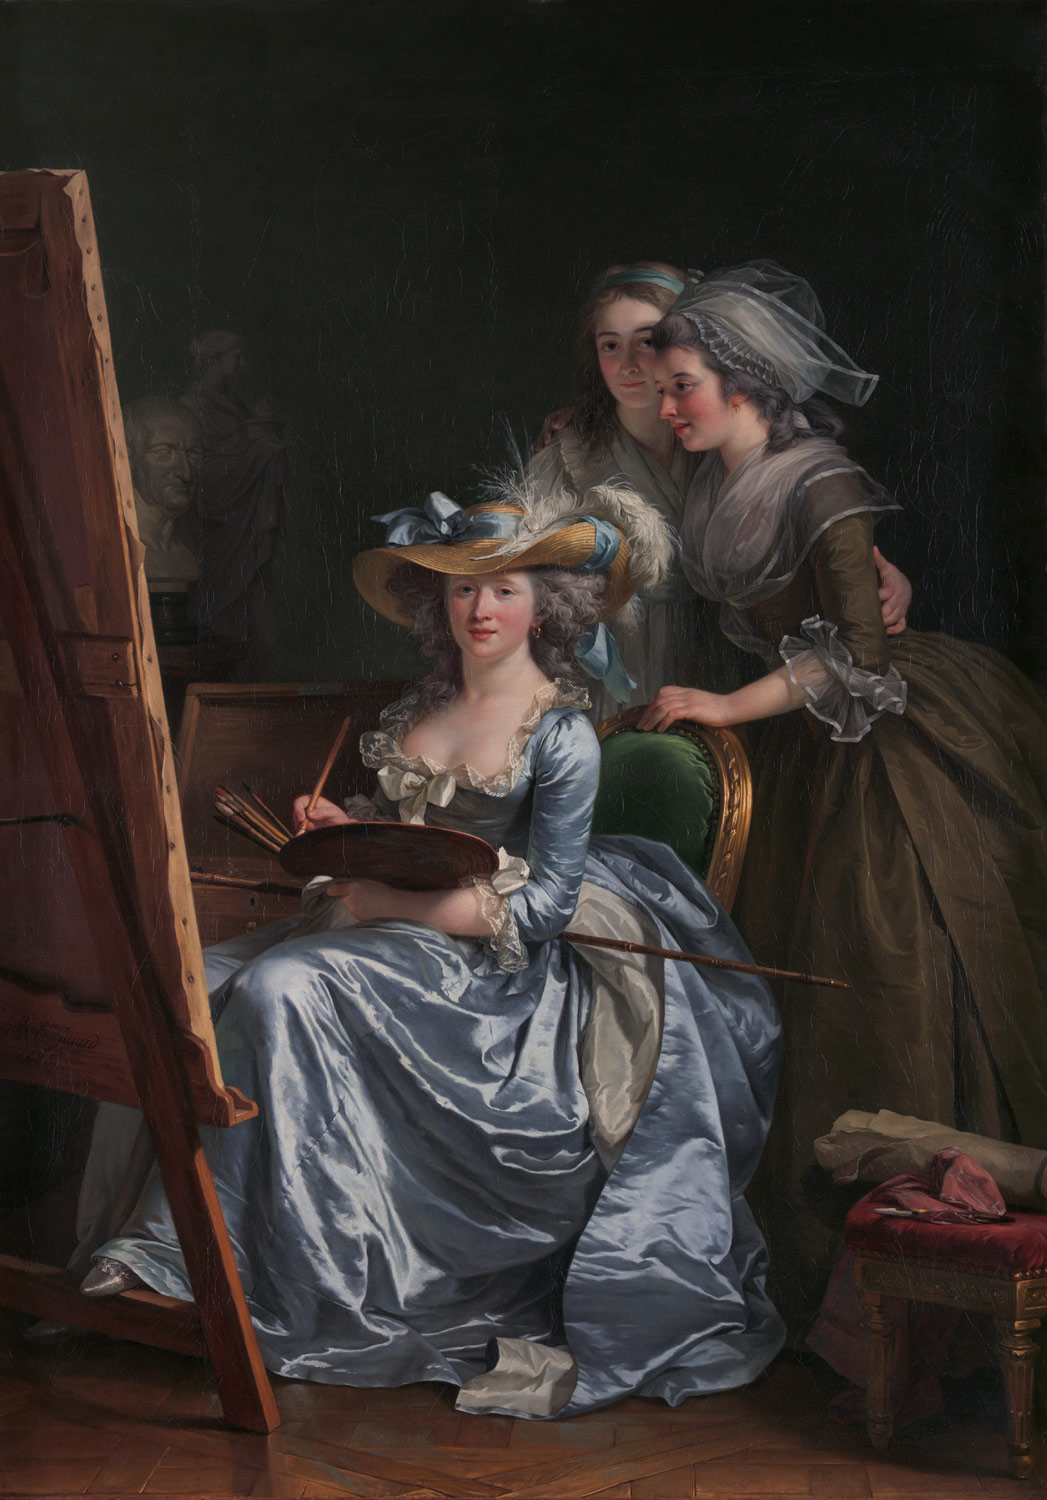 Self-Portrait with Two Pupils, Mademoiselle Marie Gabrielle Capet (1761-1818) and Mademoiselle Carreaux de Rosemond (died 1788)